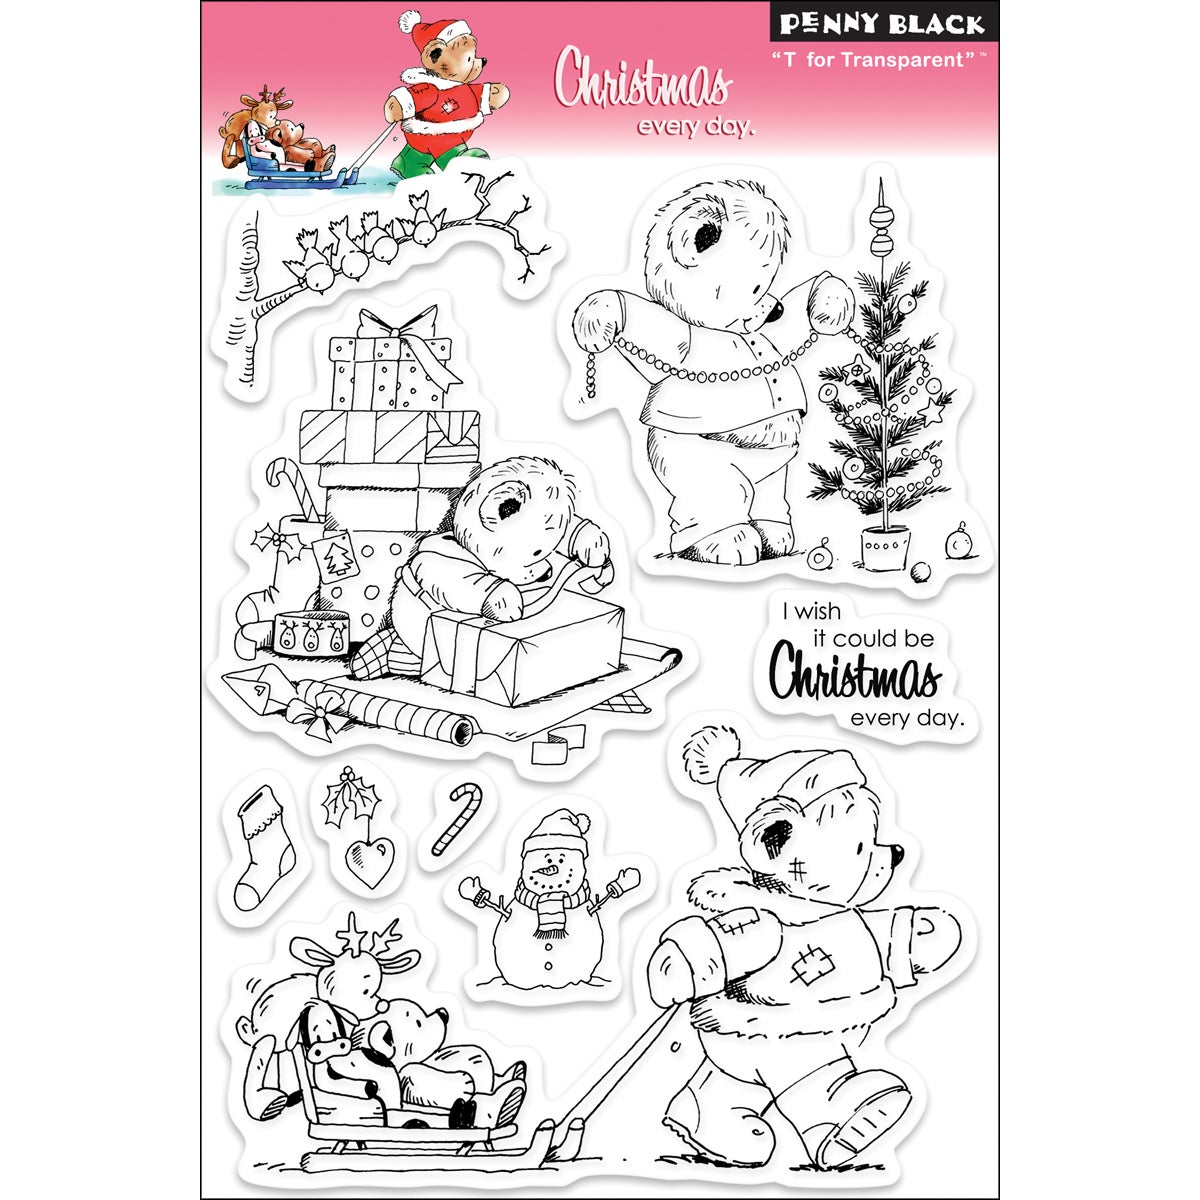 Penny Black 'Christmas Every Day' Clear Stamps Sheet